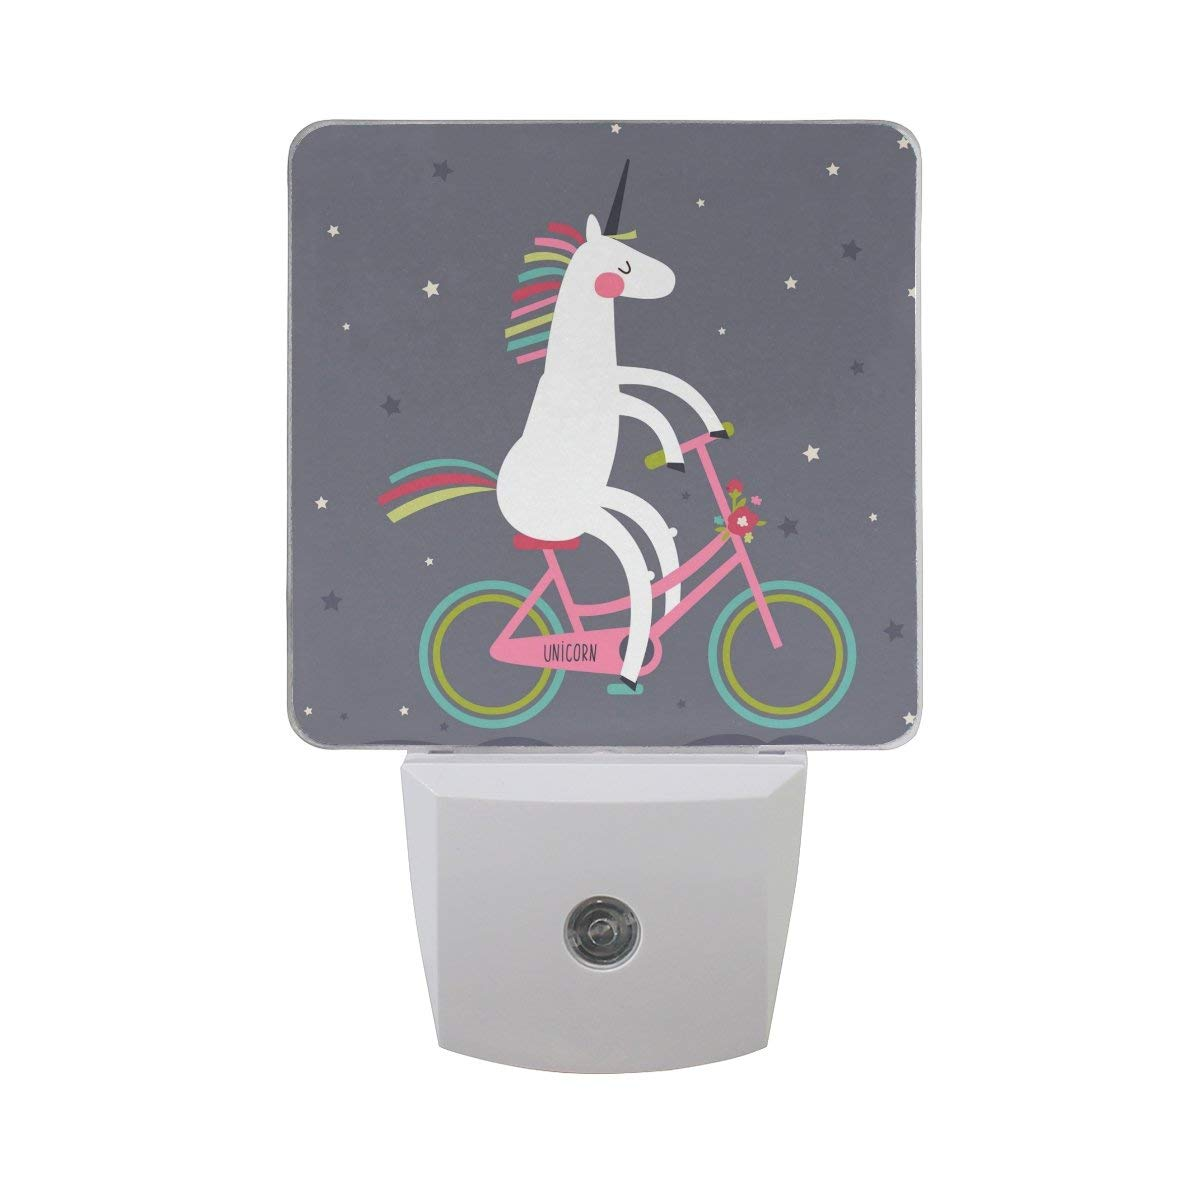 Naanle Set of 2 Cute Unicorn Colorful Bicycle Stars Auto Sensor LED Dusk to Dawn Night Light Plug in Indoor for Adults